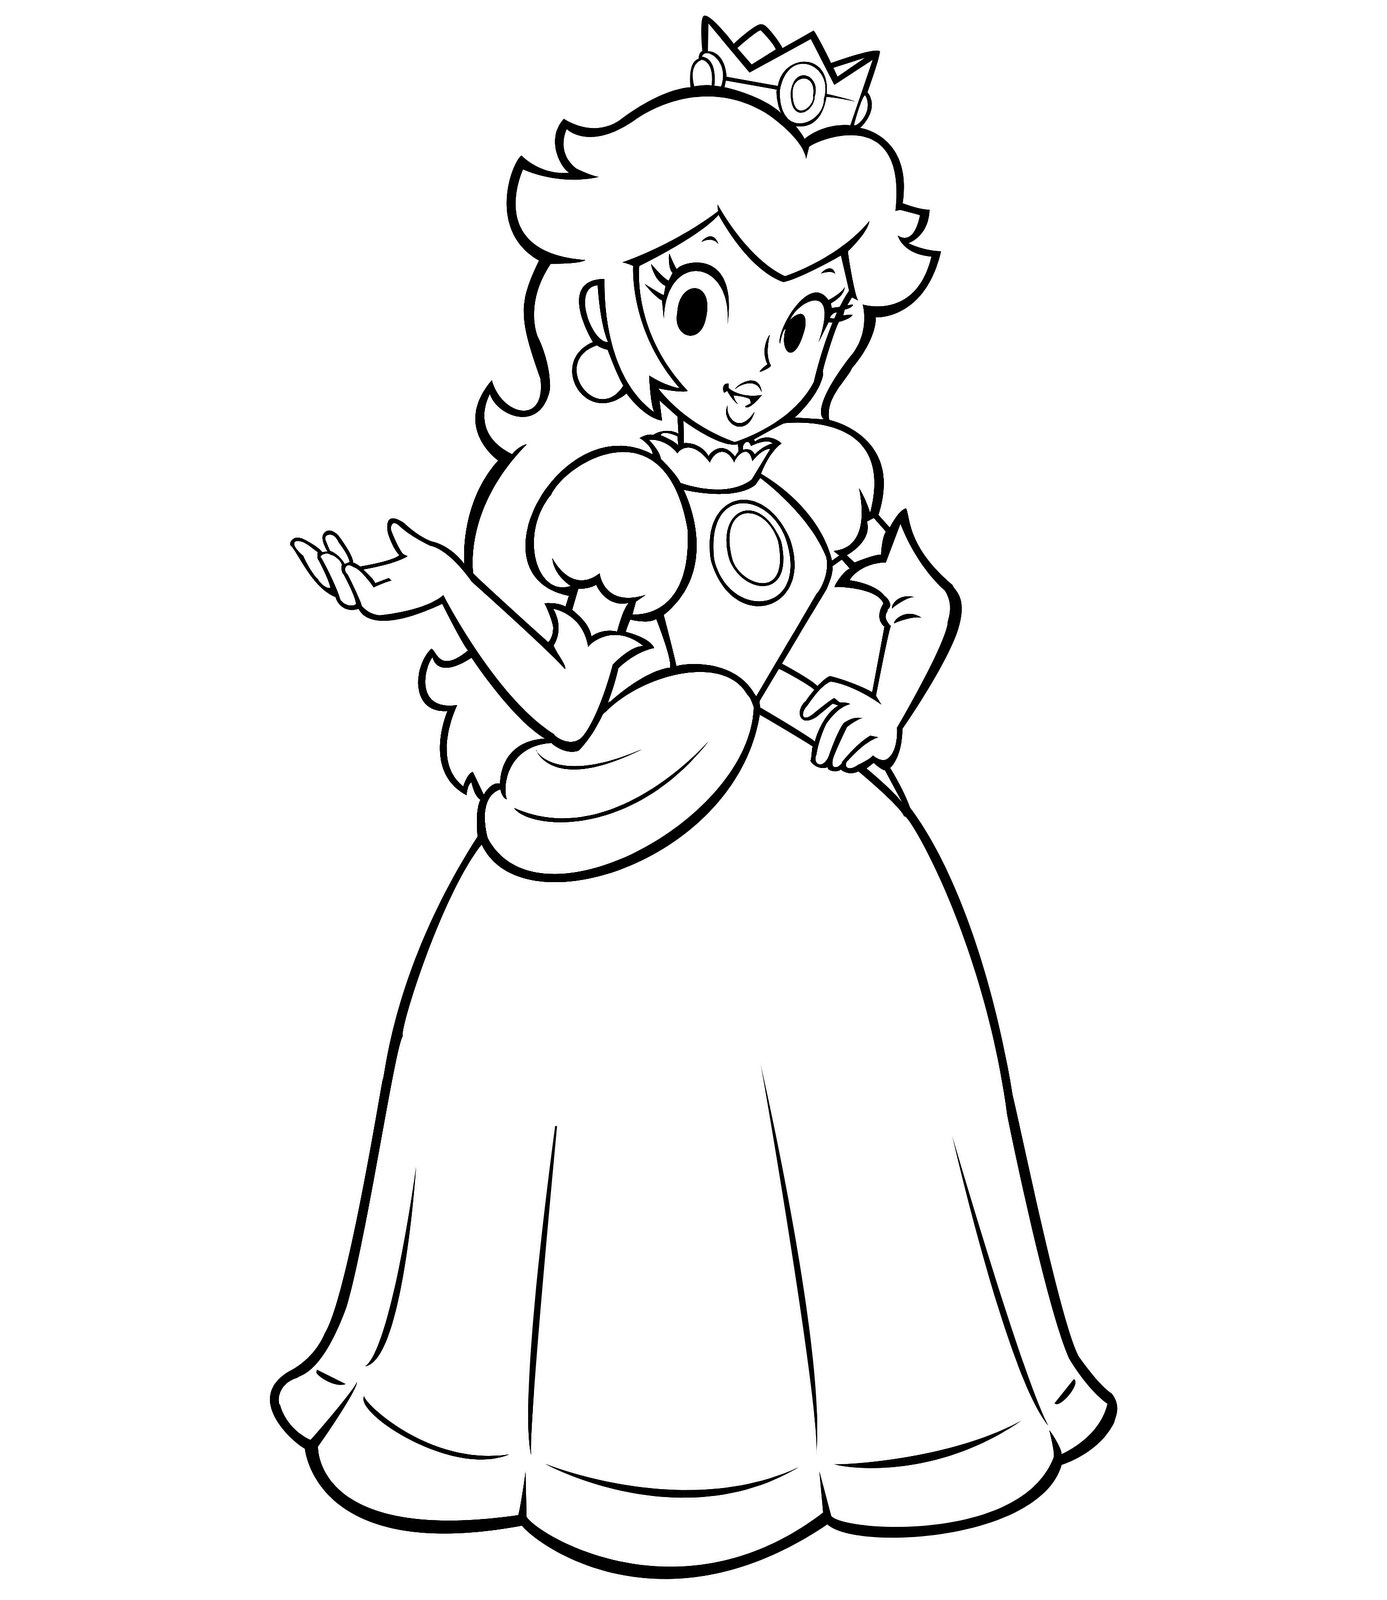 free princess coloring pages to print - free princess peach coloring pages for kids